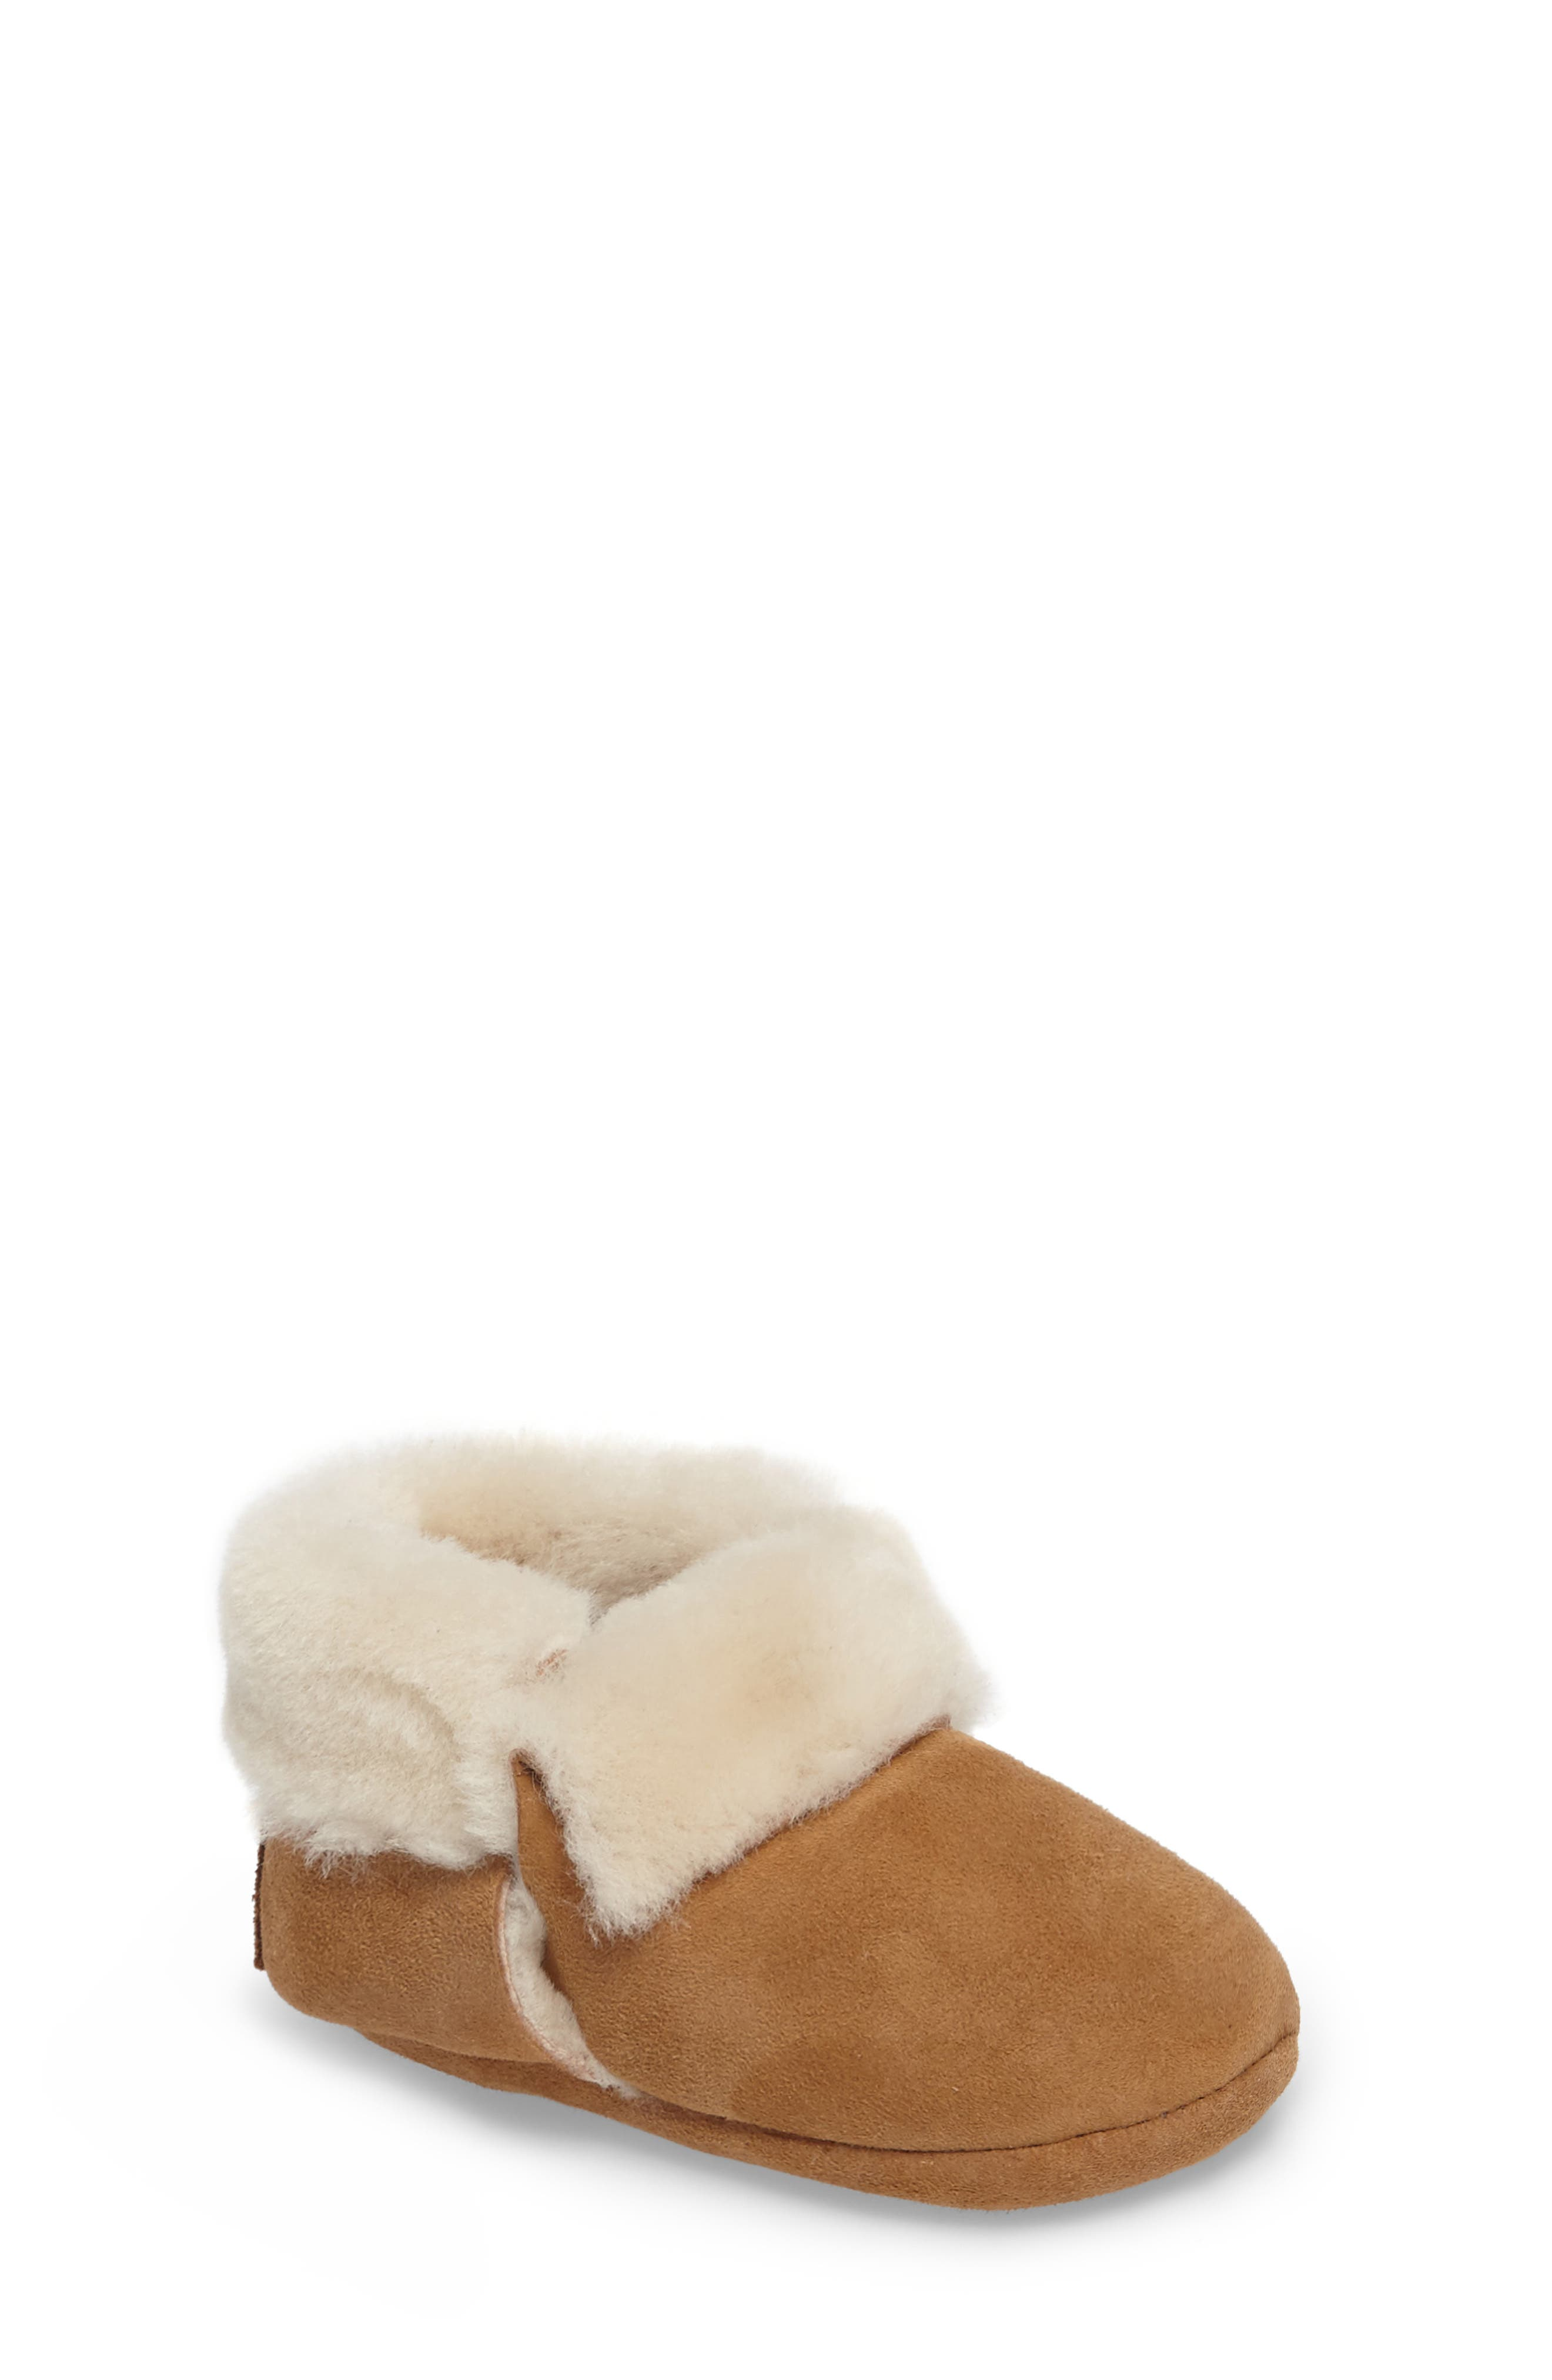 Solvi Genuine Shearling Low Cuffed Bootie,                         Main,                         color, Chestnut